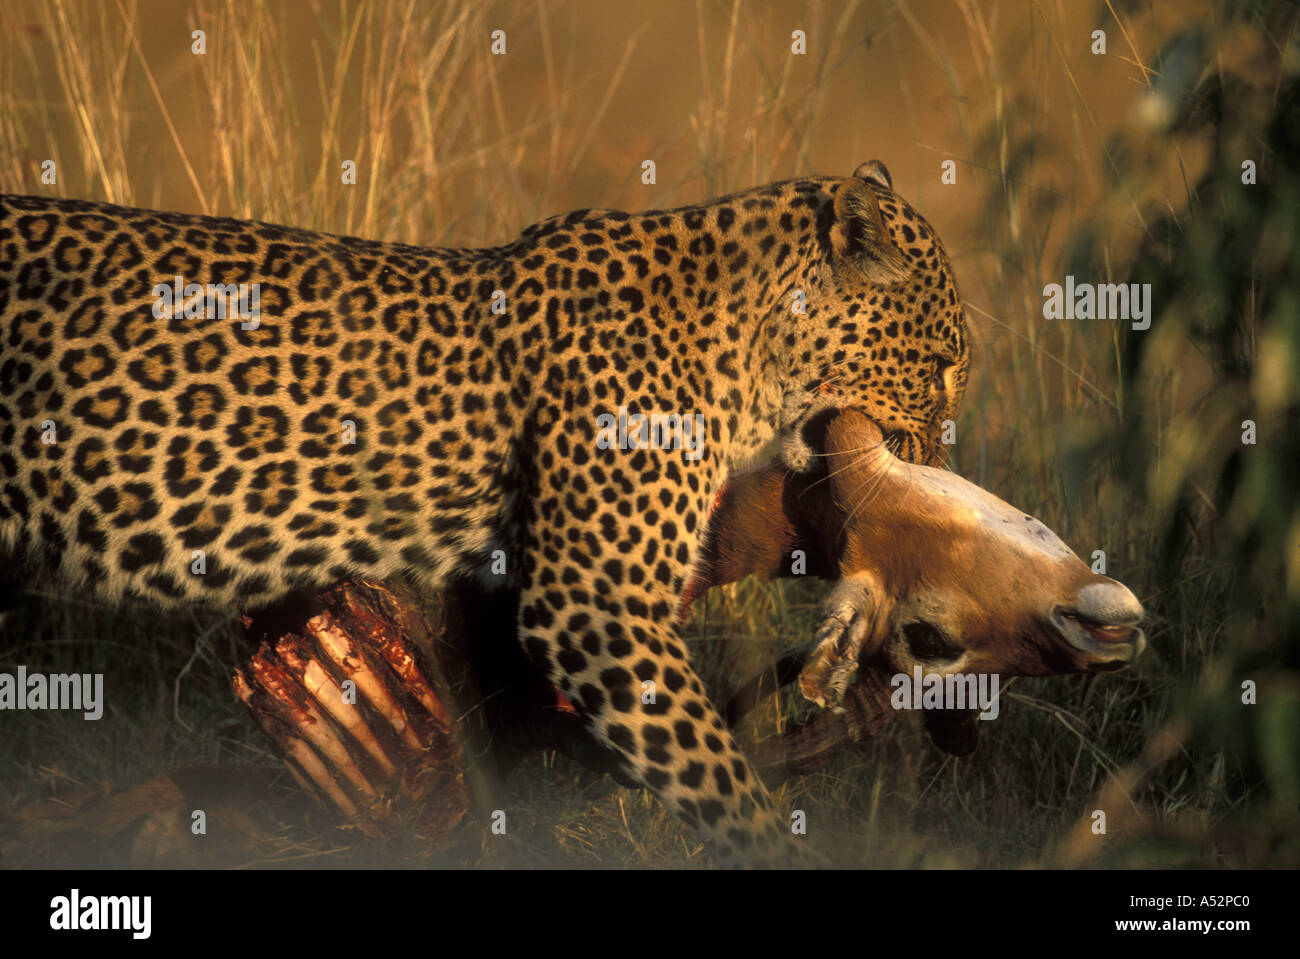 Africa Kenya Masai Mara Game Reserve Adult Female Leopard Panthera pardus carries Impala kill through brush Stock Photo